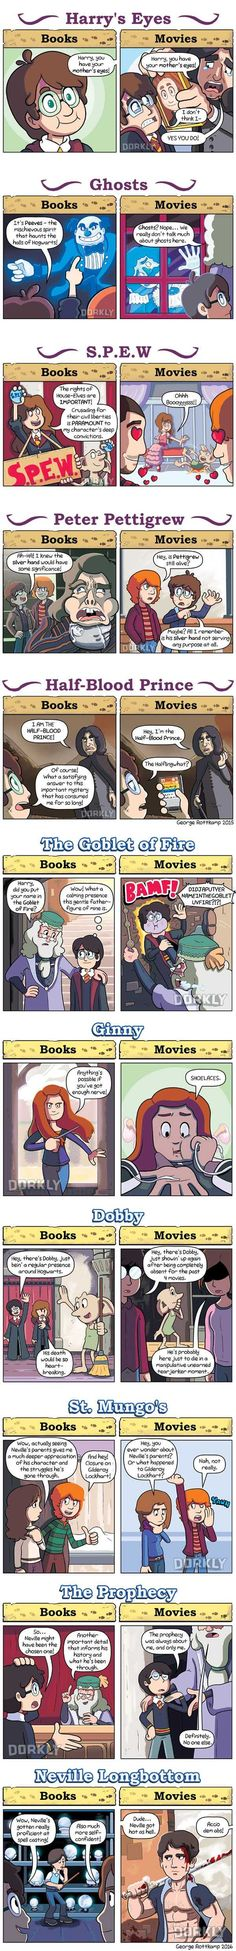 11 Ways Harry Potter Movies Are Different From The Books - Hogwarts Harry Potter Jokes, Harry Potter Fandom, Harry Potter World, Harry Potter Comics, Harry Potter Sirius, Always Harry Potter, Hogwarts, Books Vs Movies, Desenhos Harry Potter